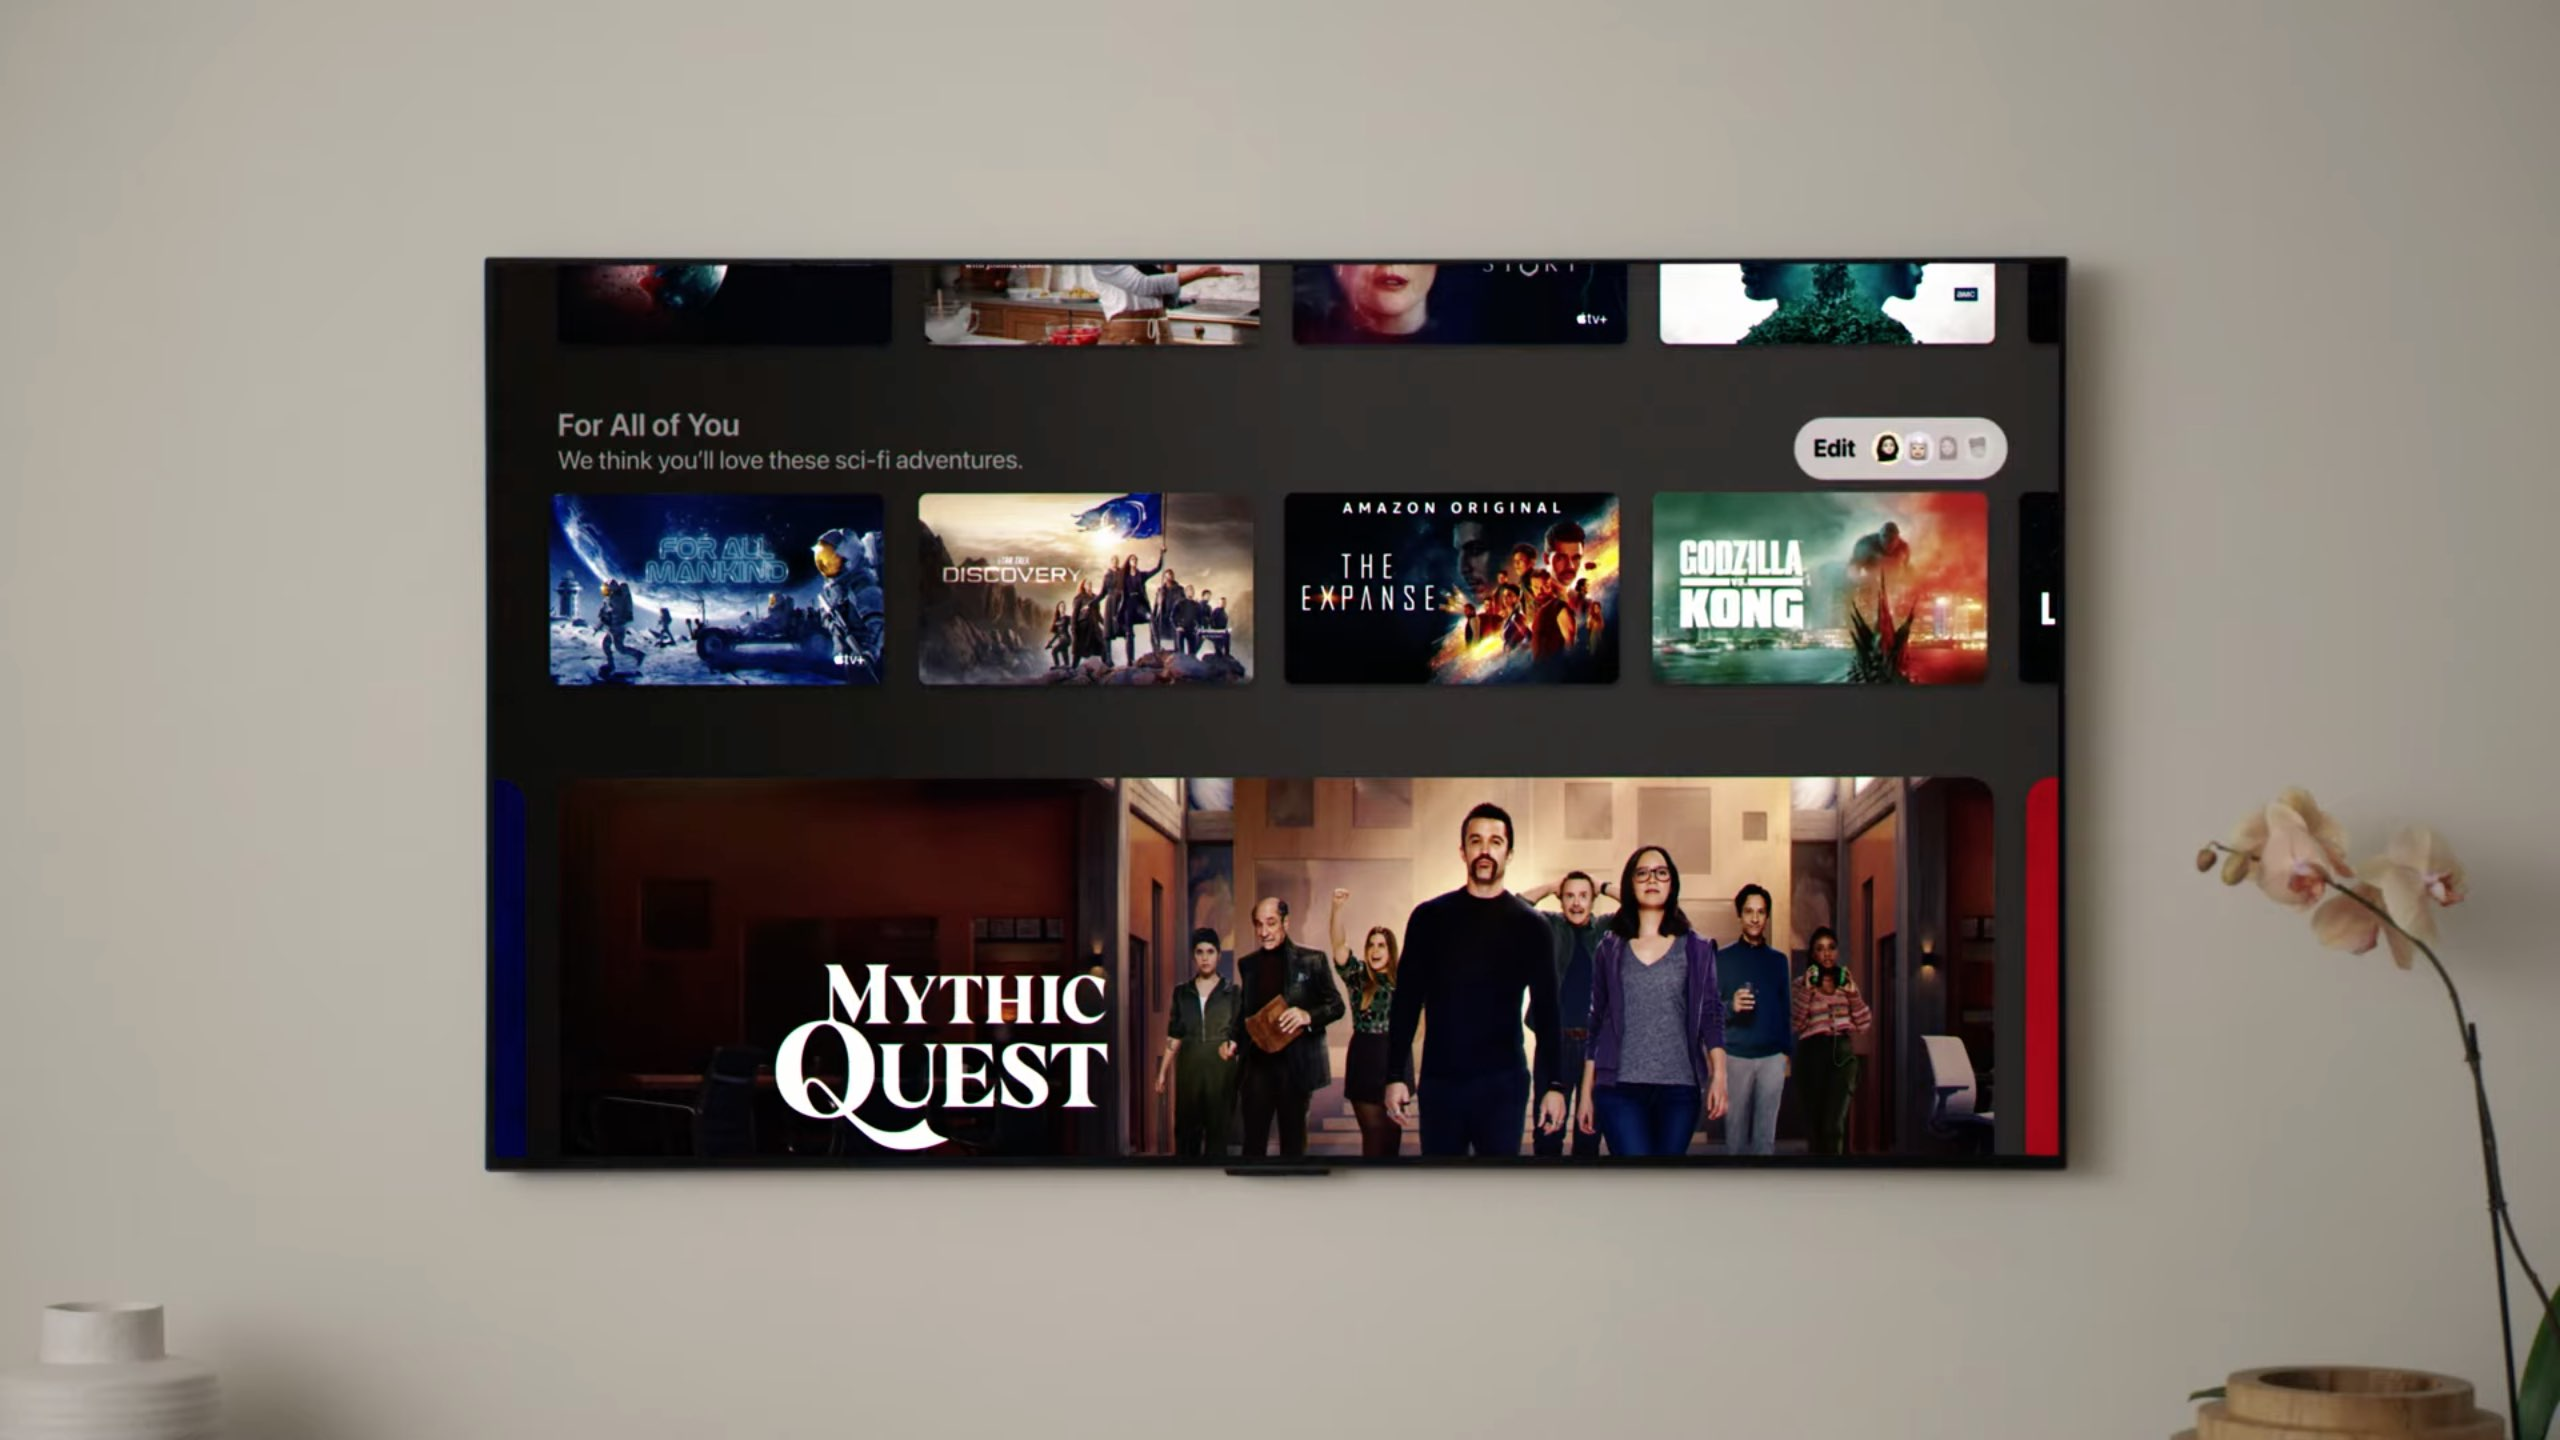 """An image showing the """"For all of You"""" section in the Apple TV app on tvOS 15"""